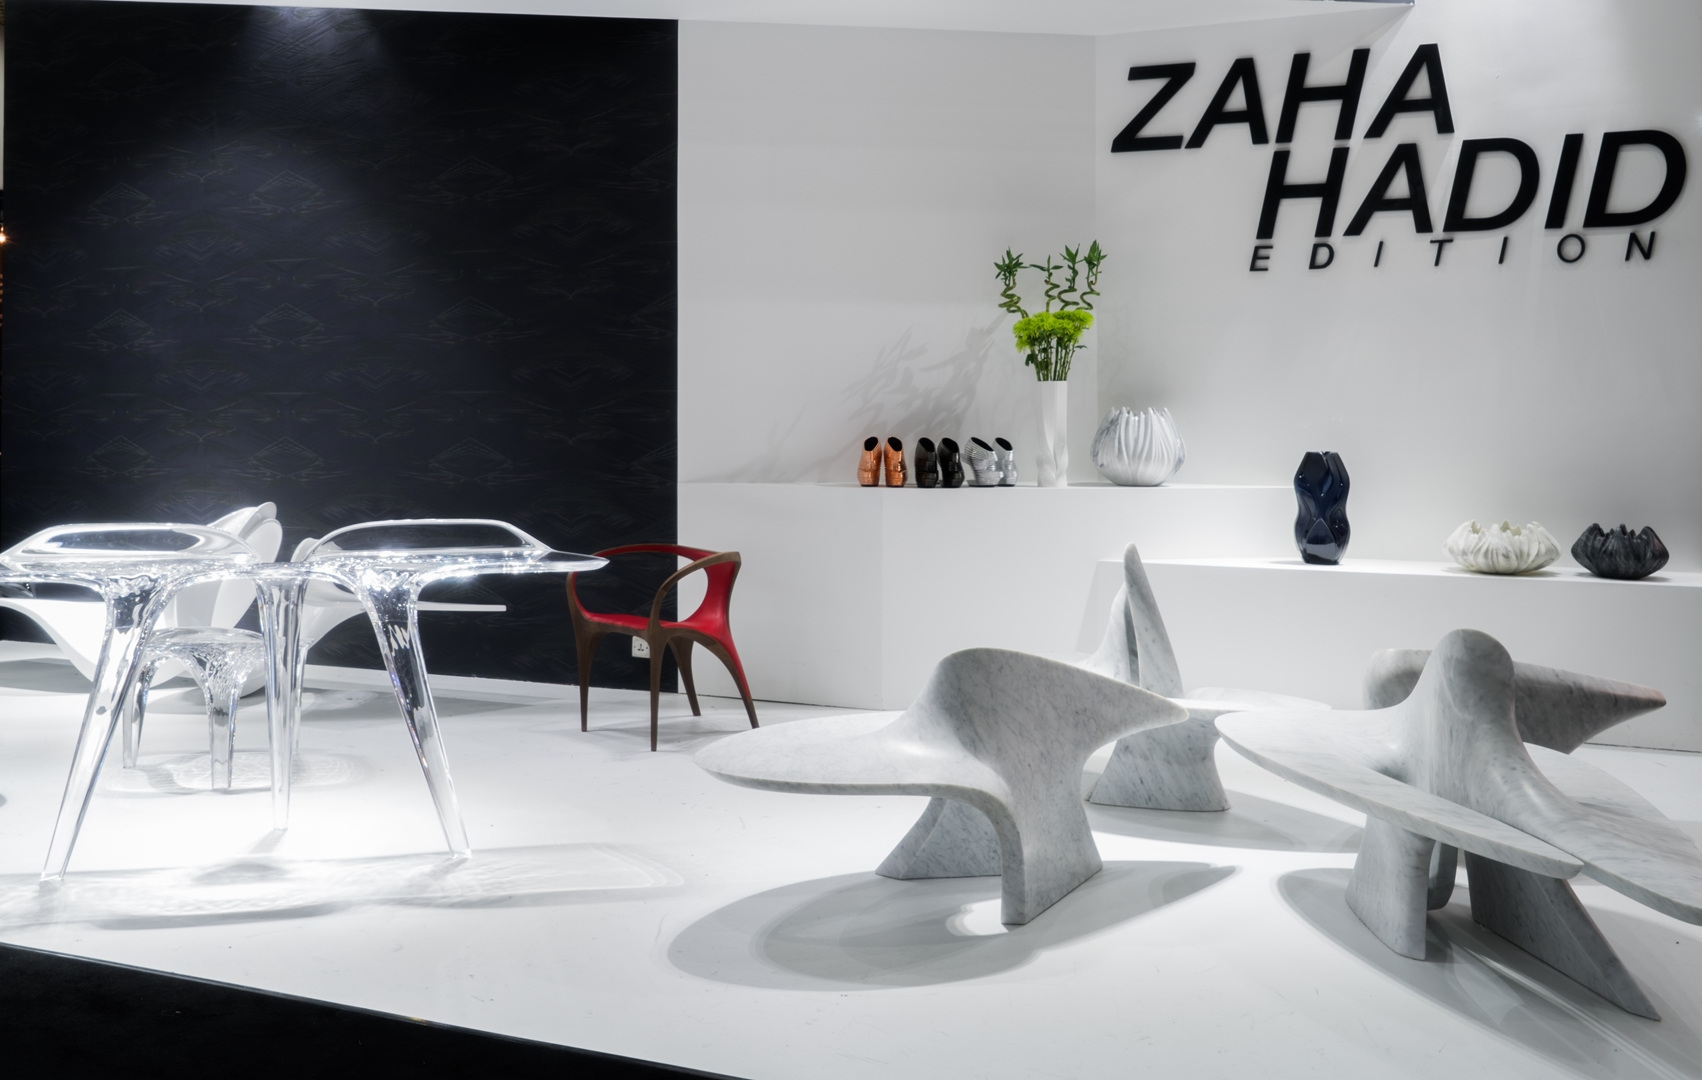 Design Shanghai_Collectible_Zaha Hadid Edition (Copy)